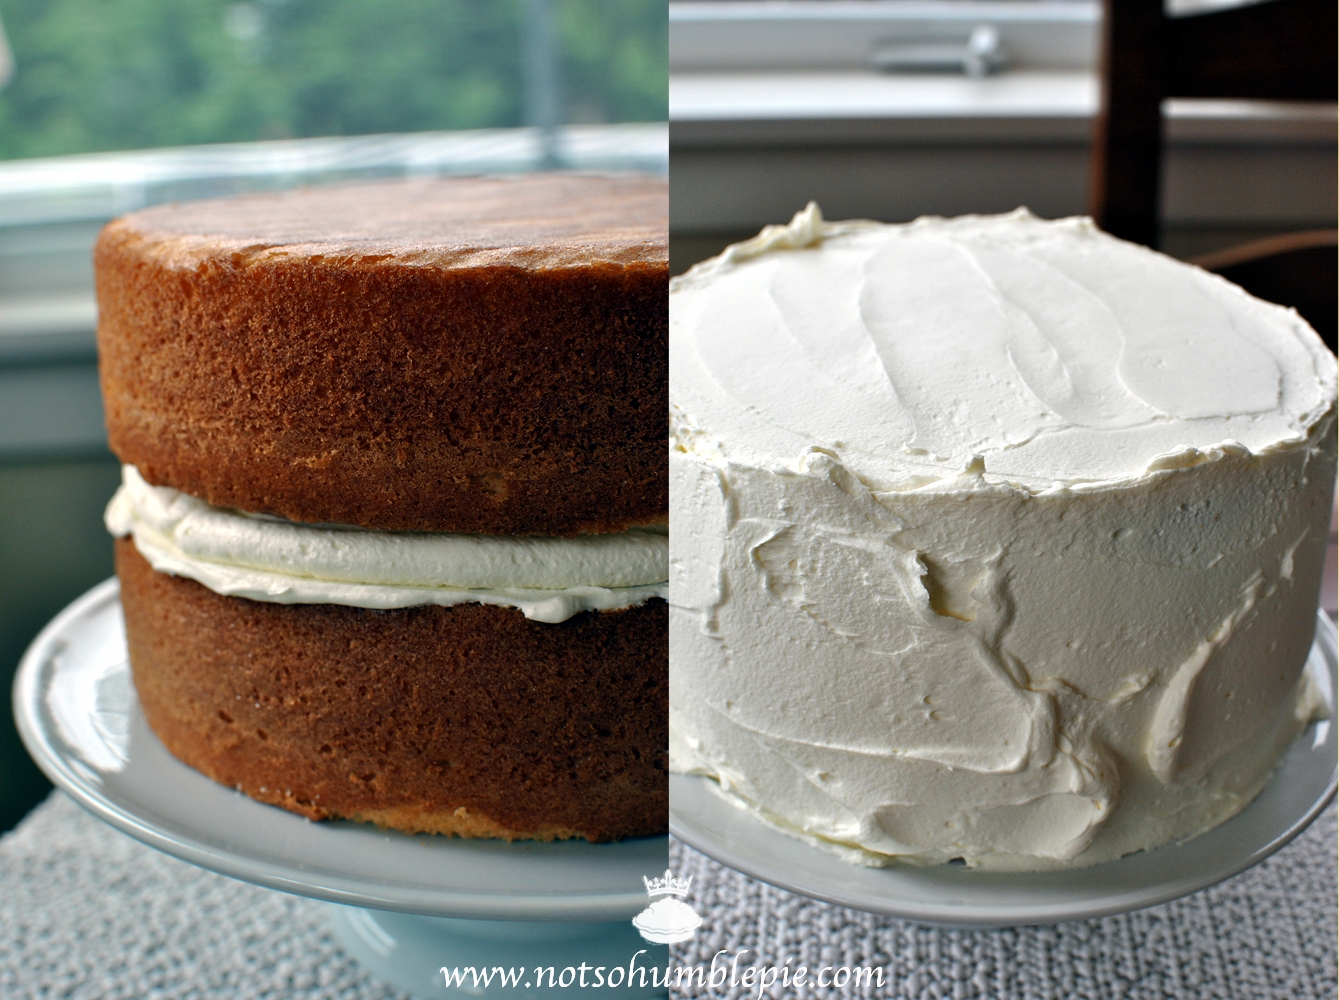 cake gently place the second layer of cake on top